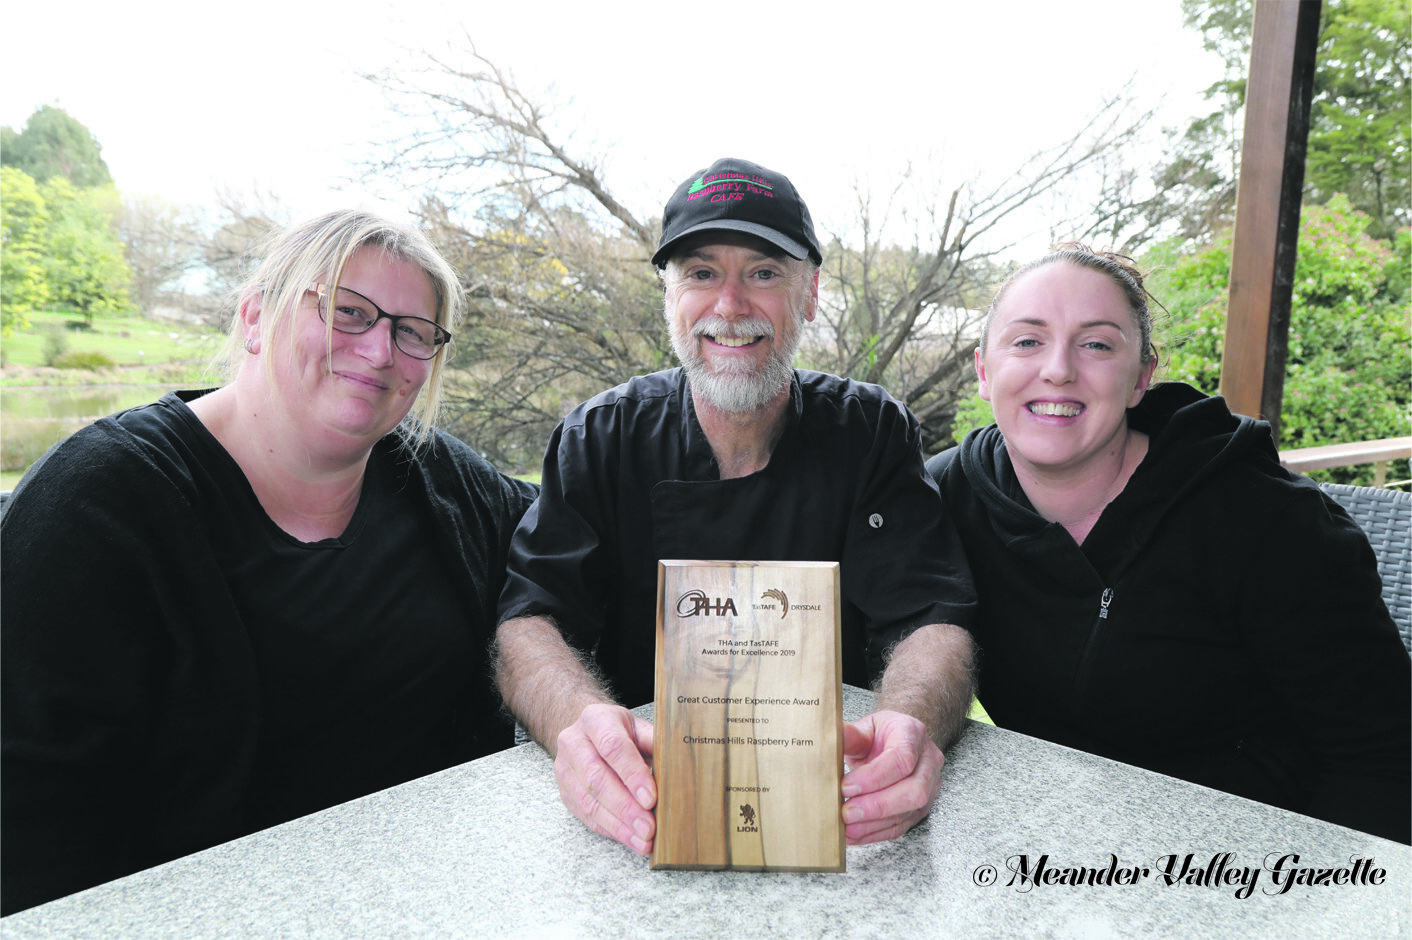 Photo by Mike Moores  Café supervisor Peta Robinson, chef Michael Lambert and manager Elise Chilcott – proud of their staff, service and food – now proud customer experience award winners.